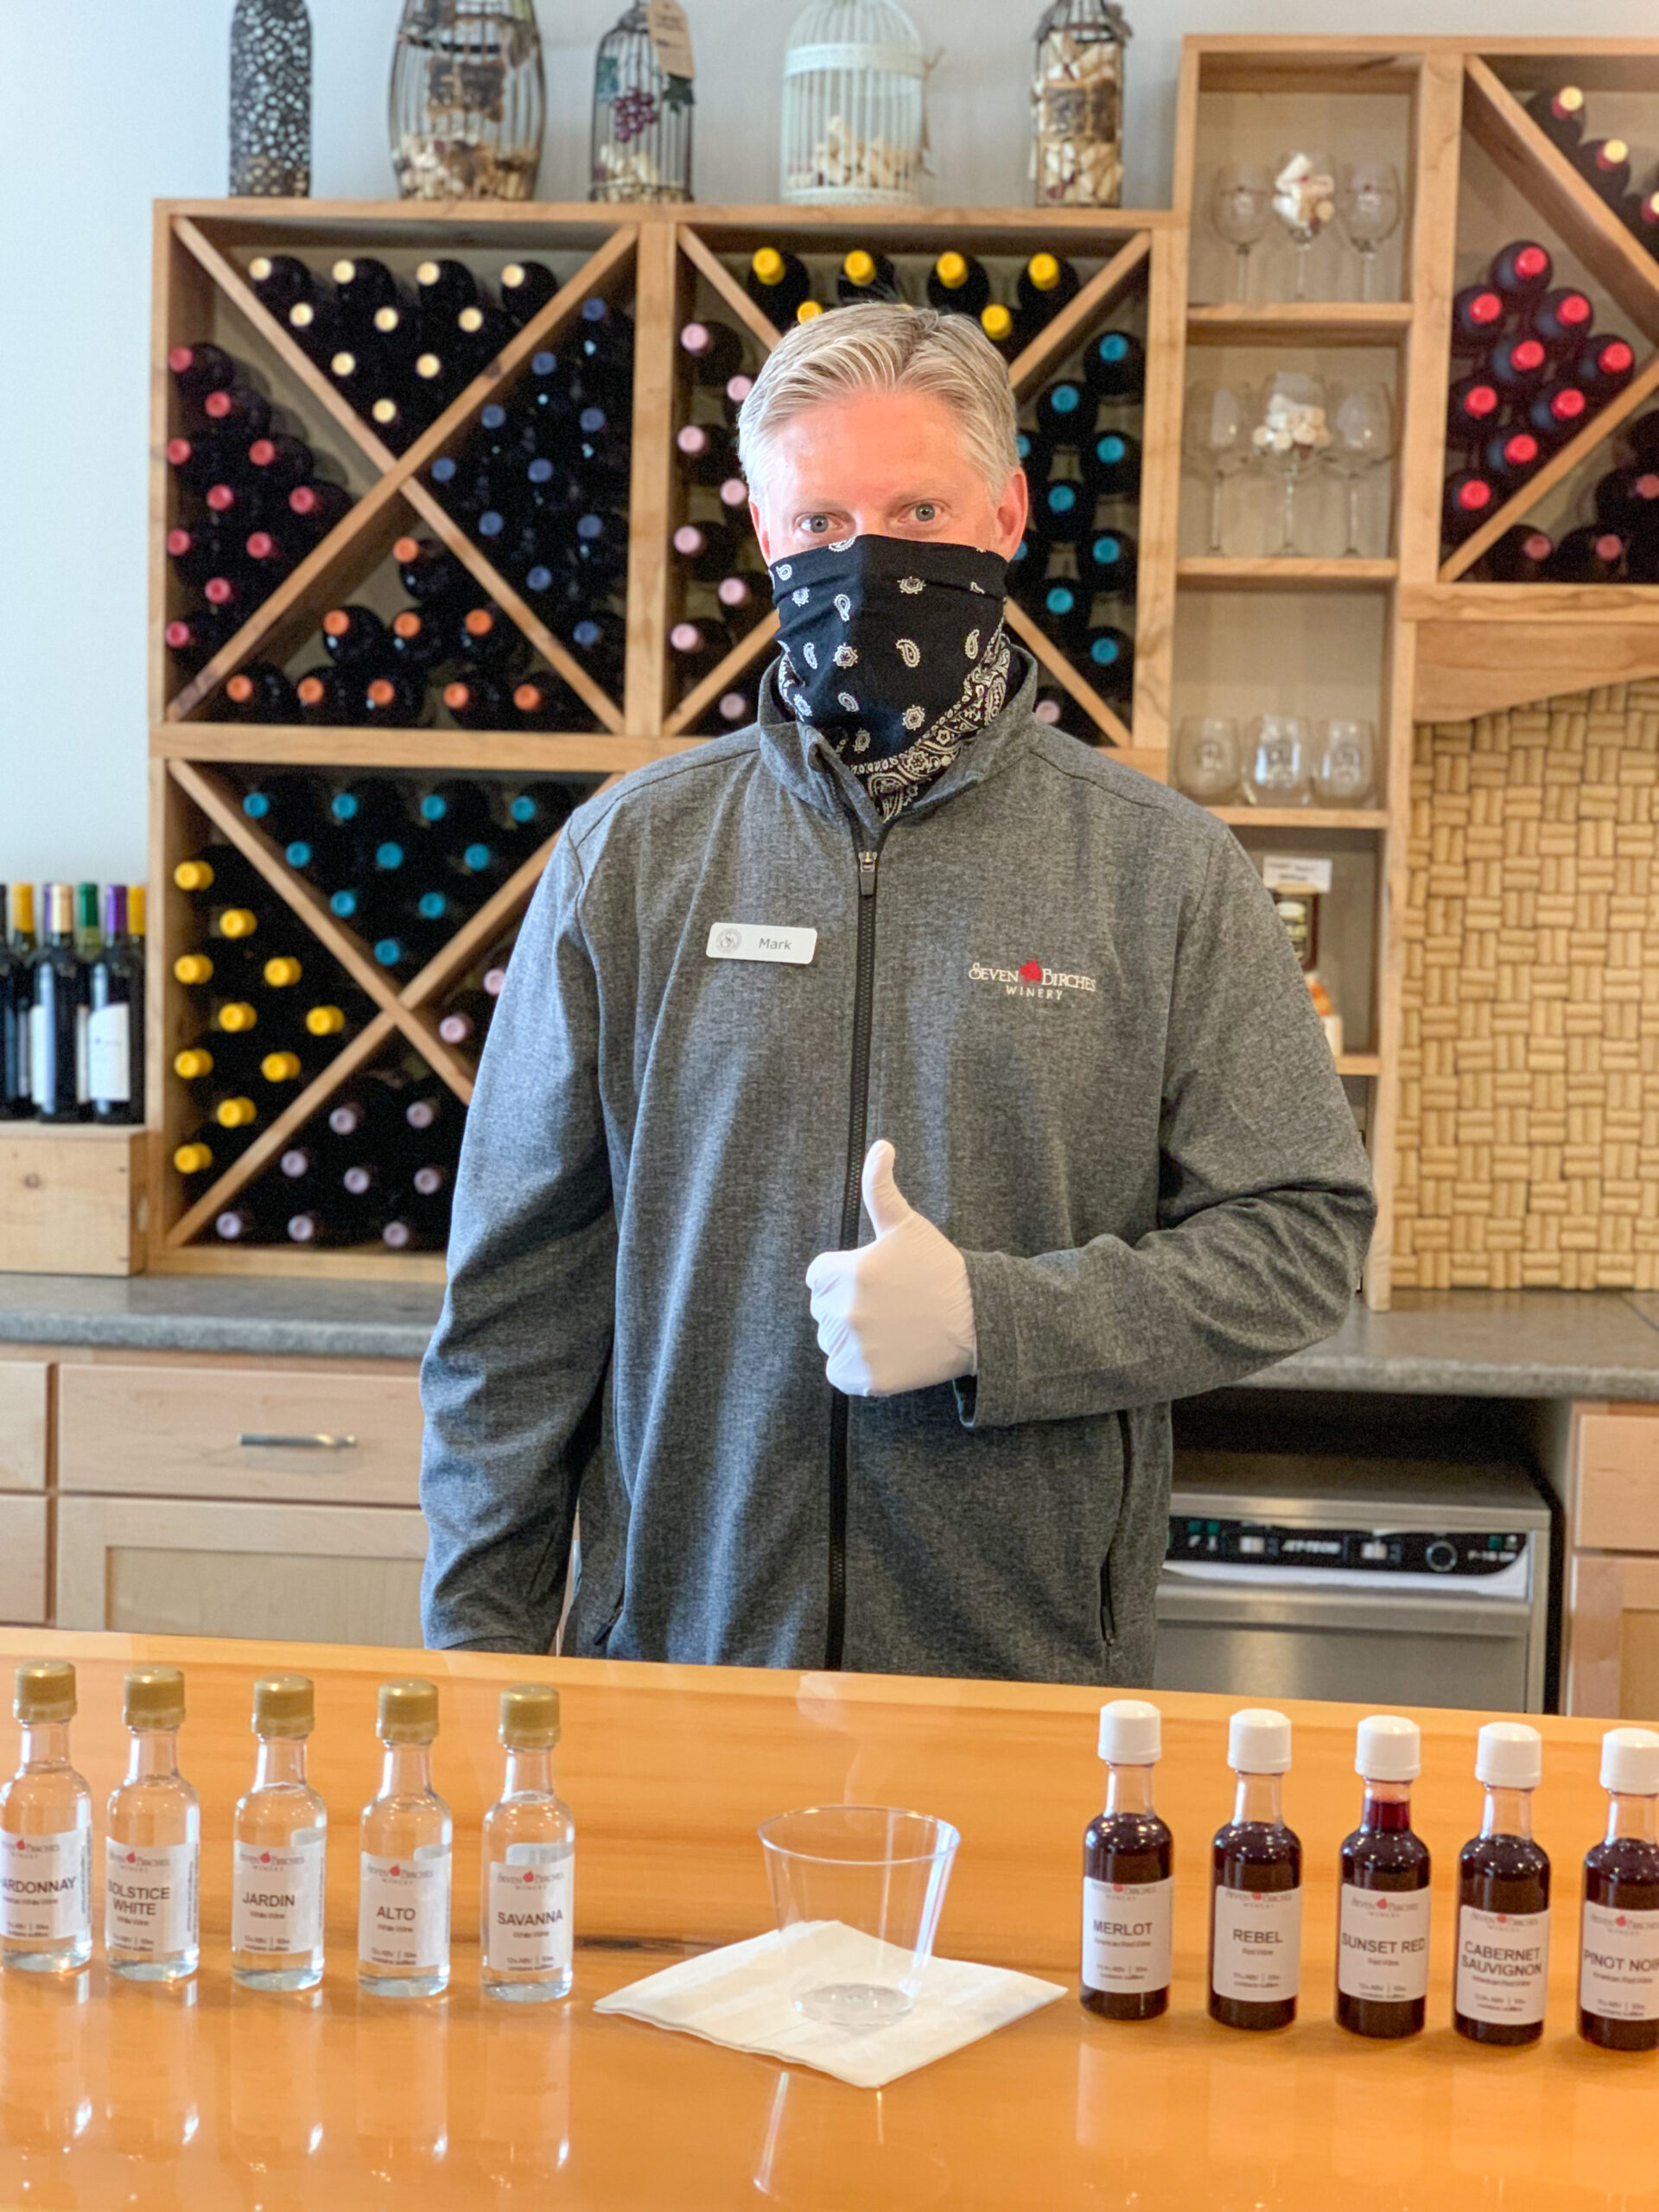 Re-Imagined Tasting Room Experience During COVID-19